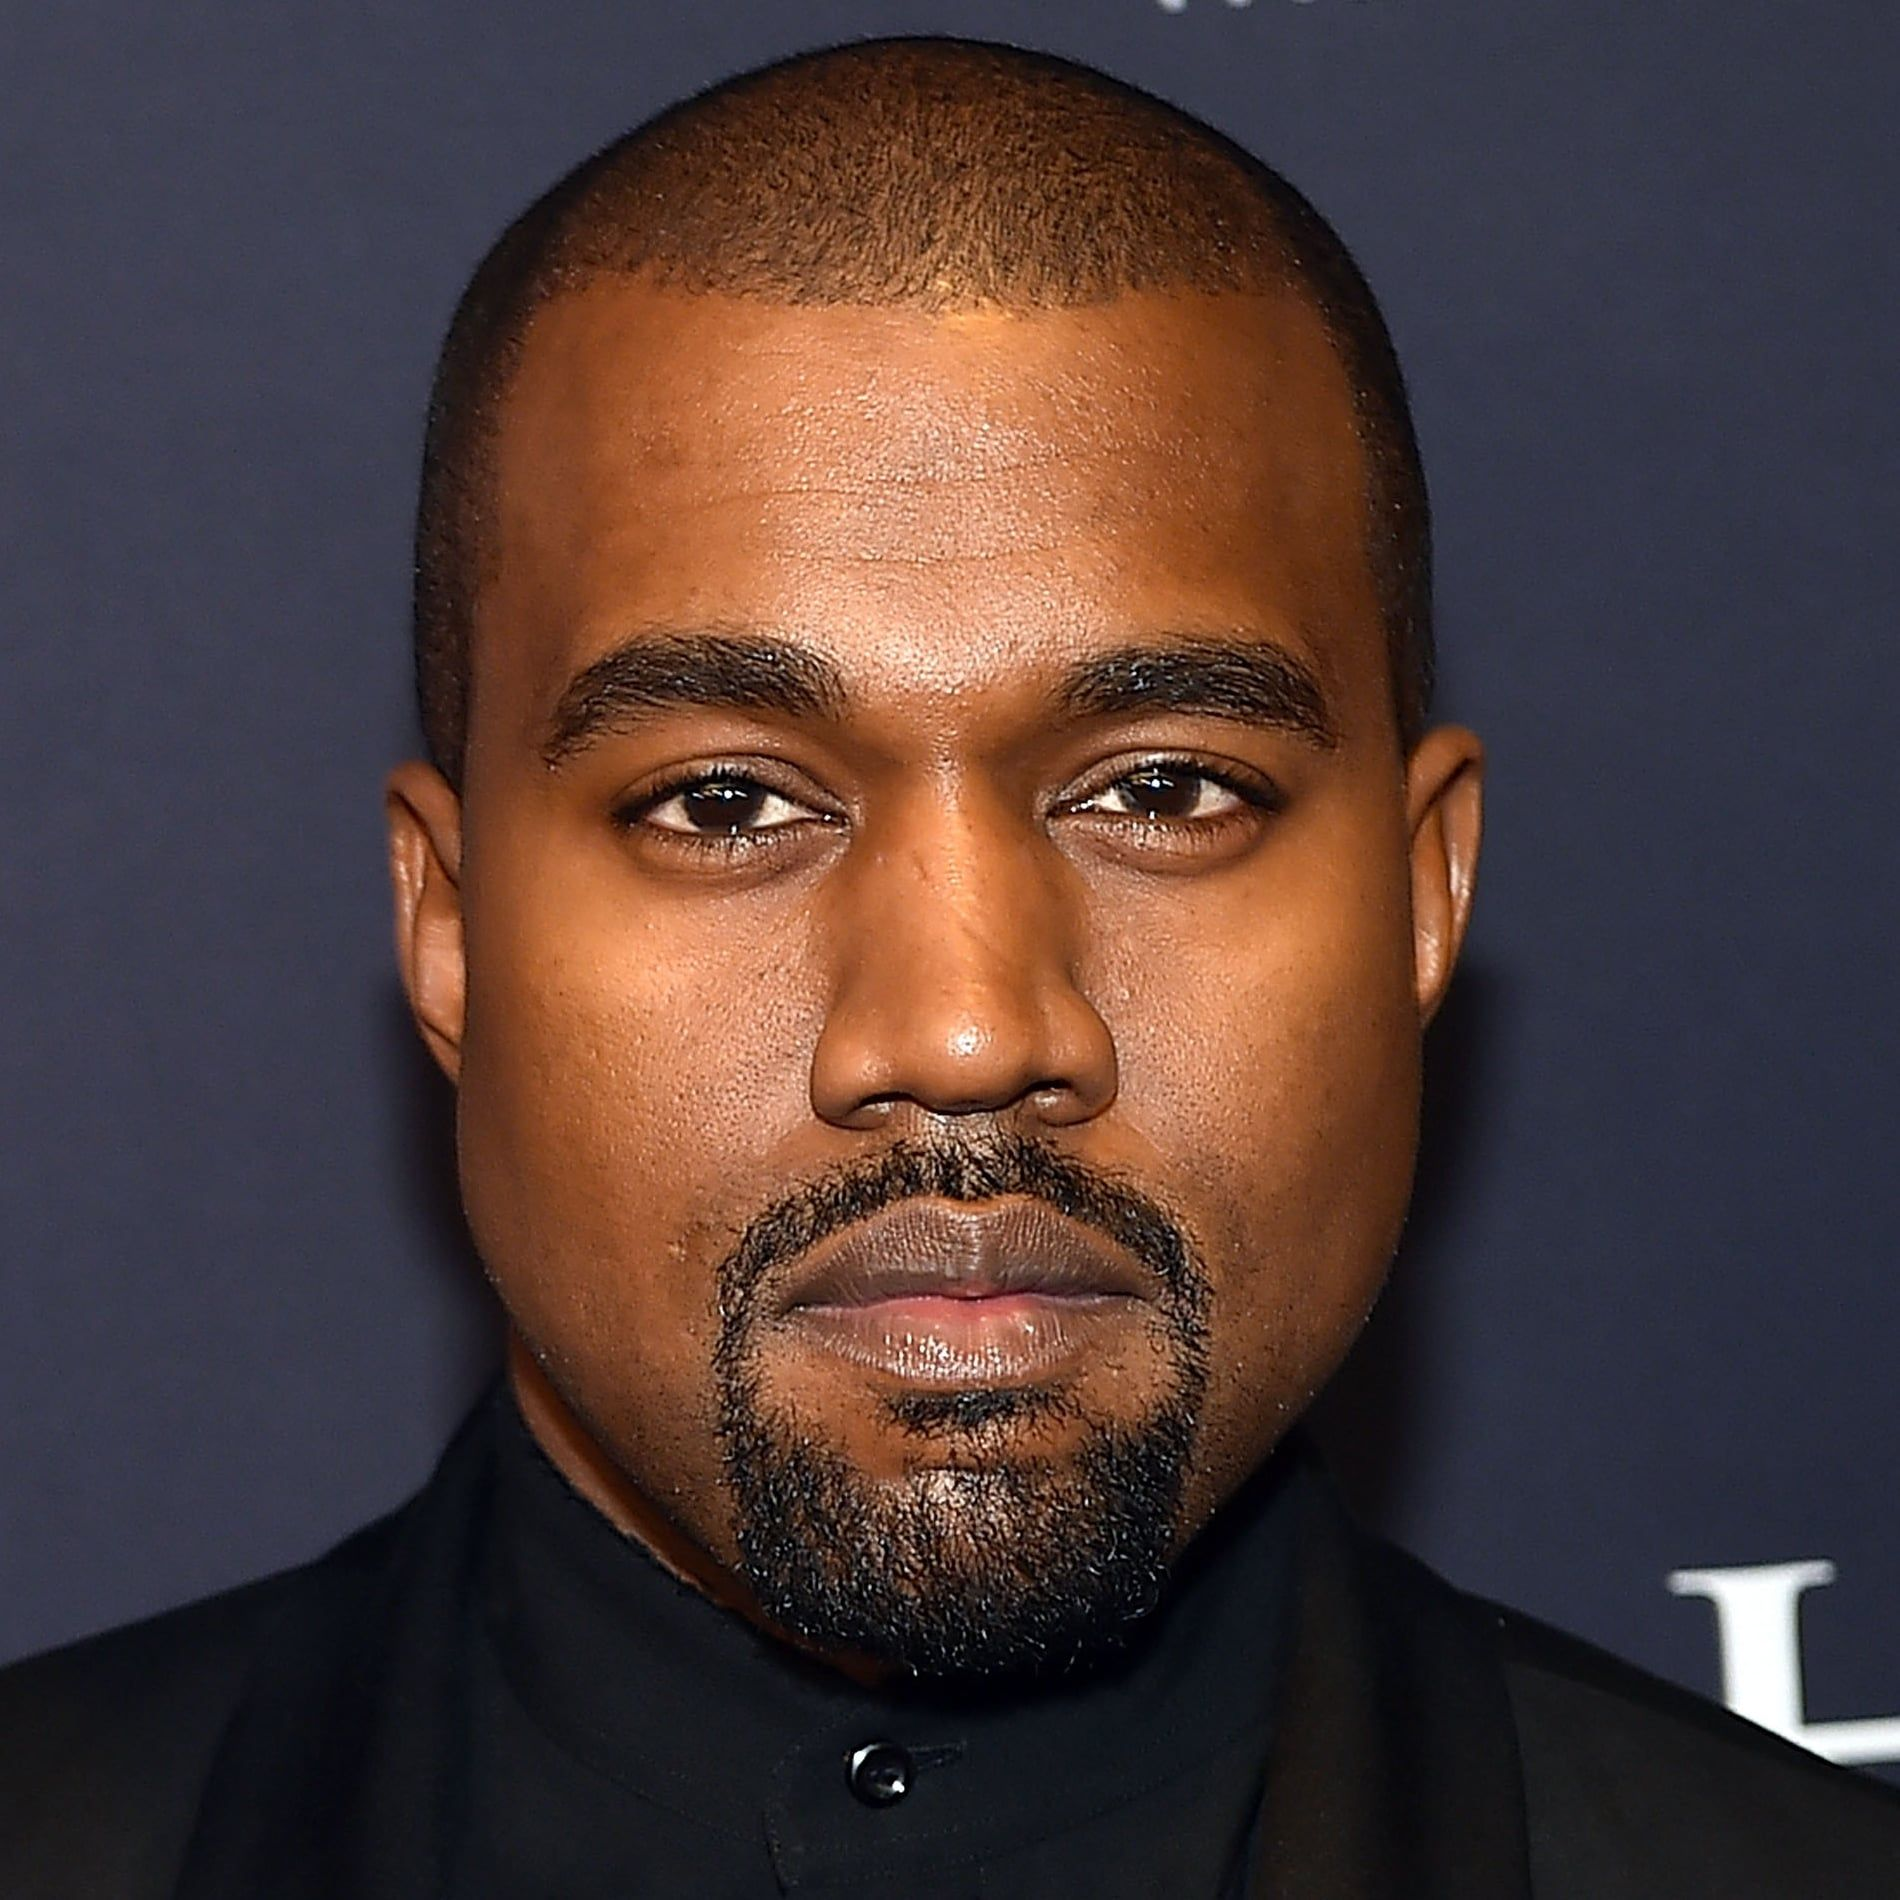 Kanye West Age Height Music Awards Wife Son And More In 2020 Kanye West American Rappers Kanye